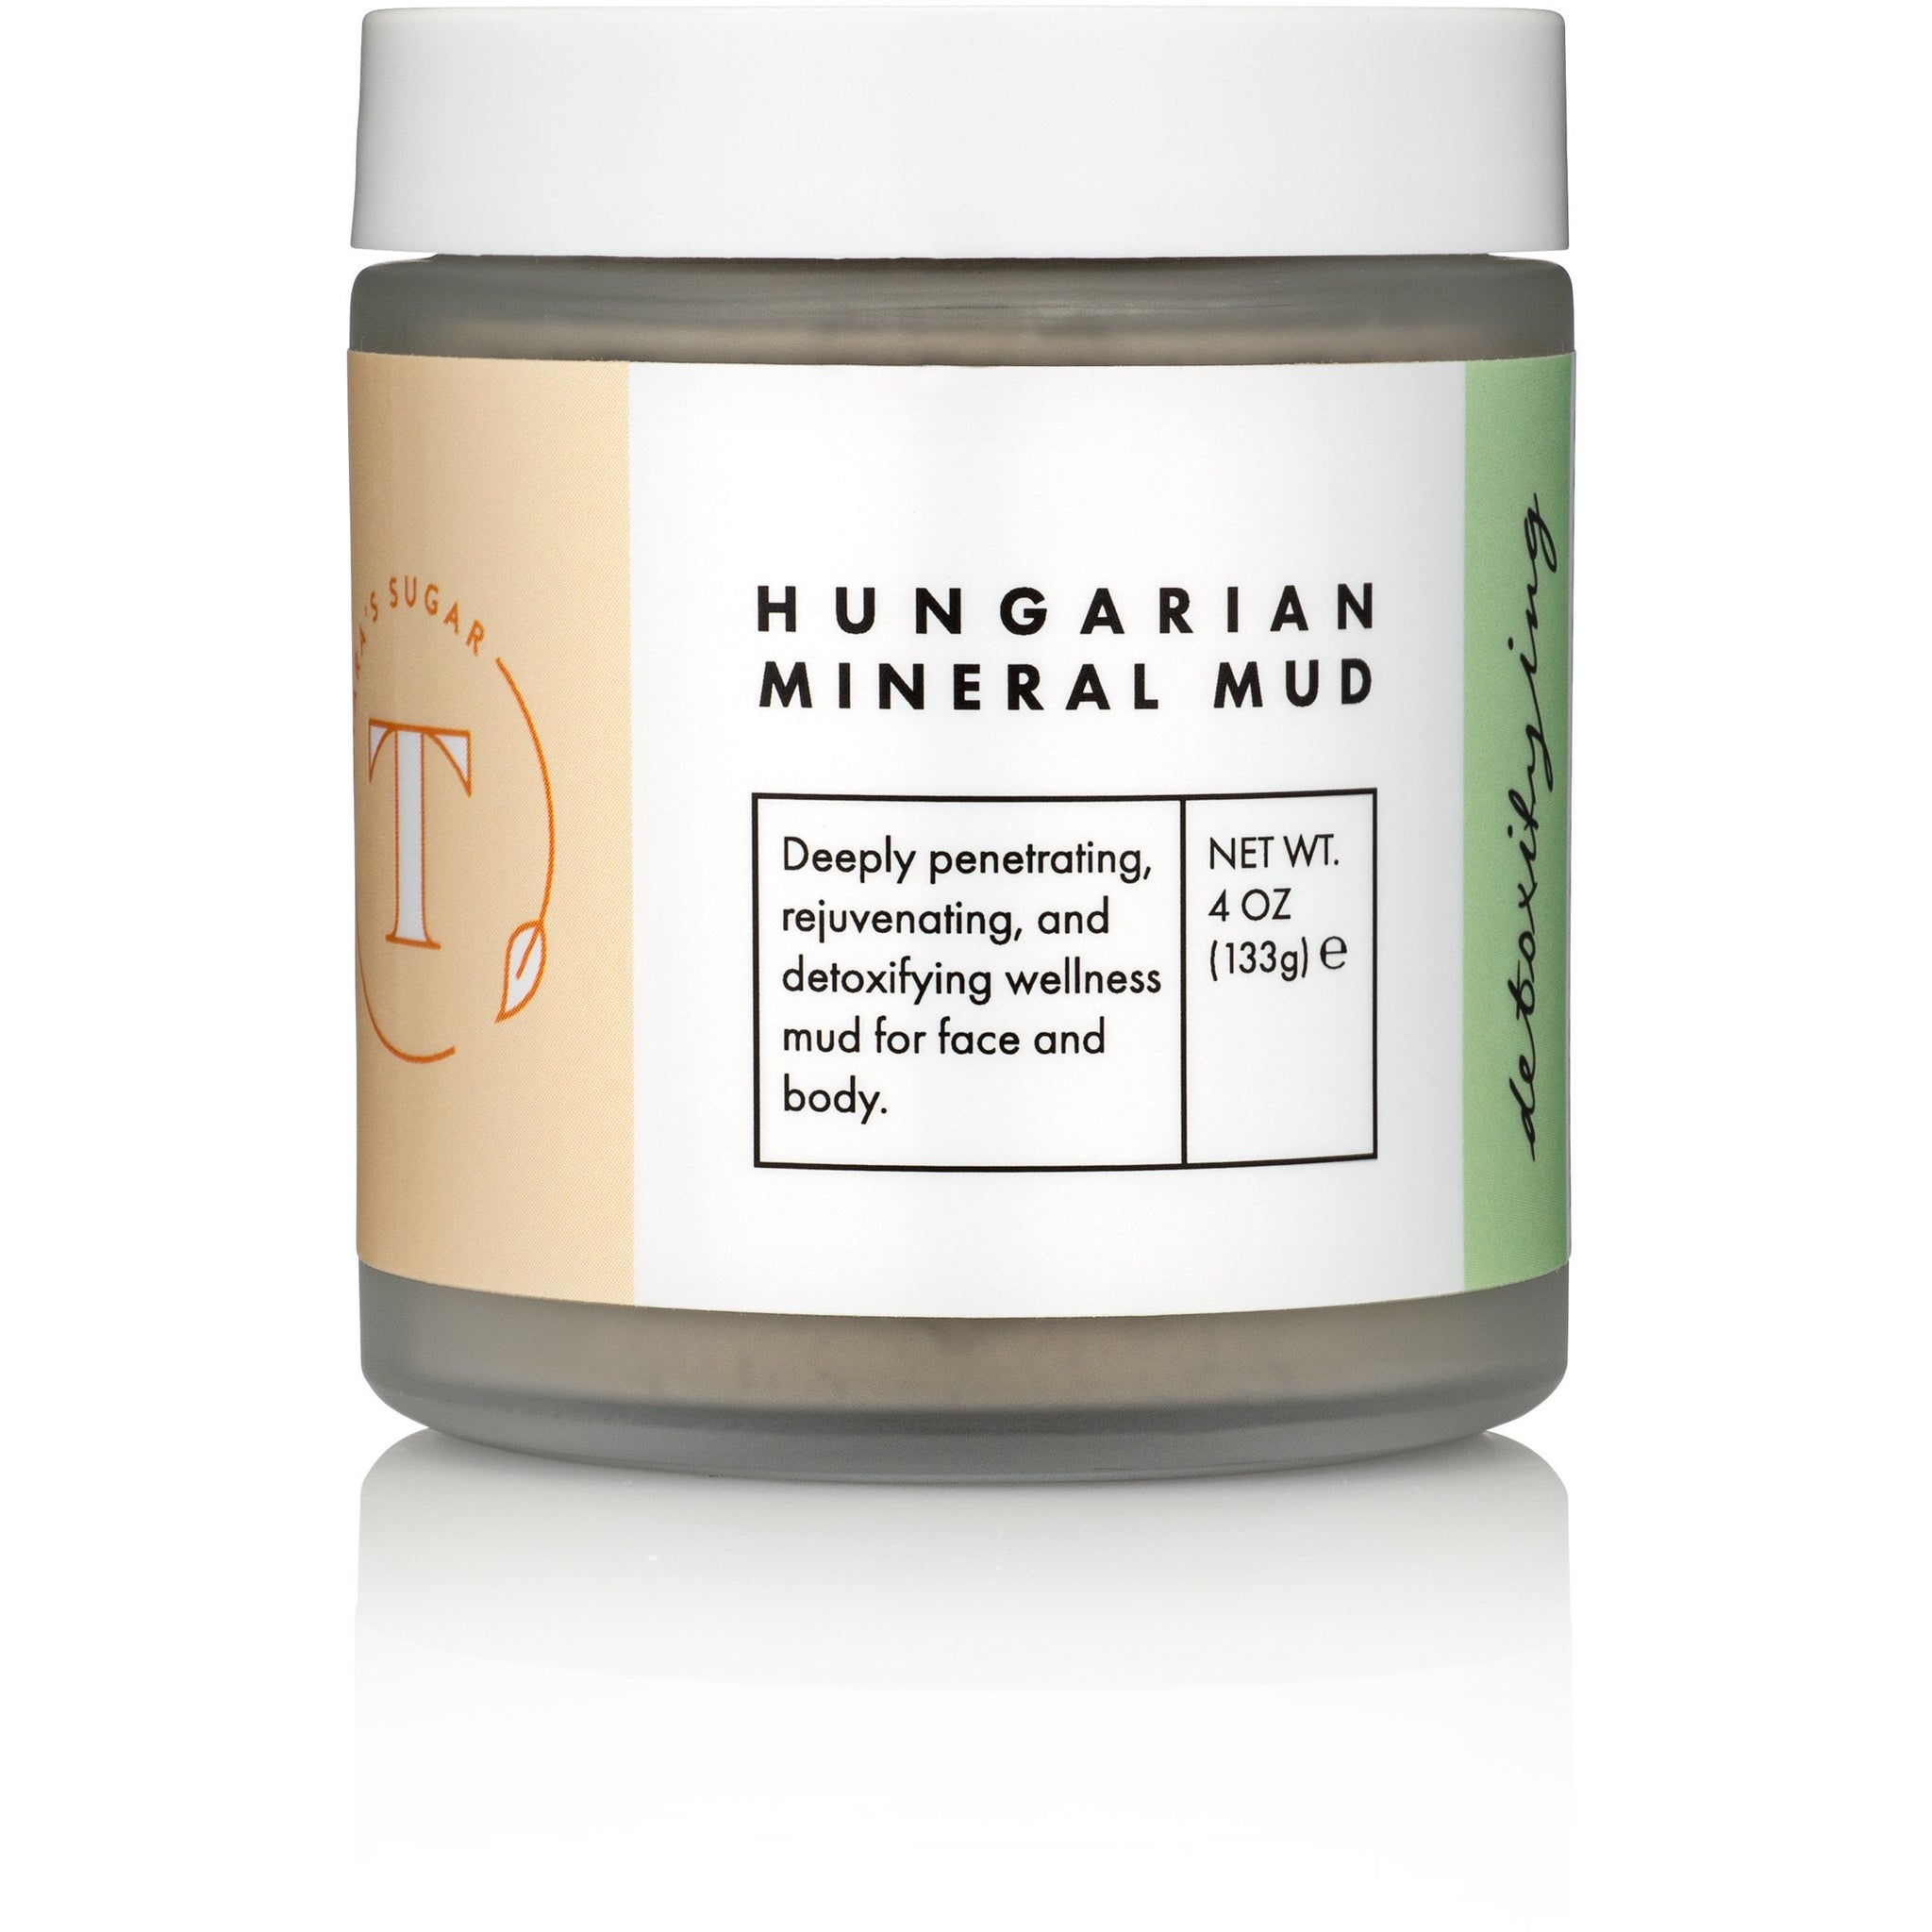 Hungarian Mineral Mud